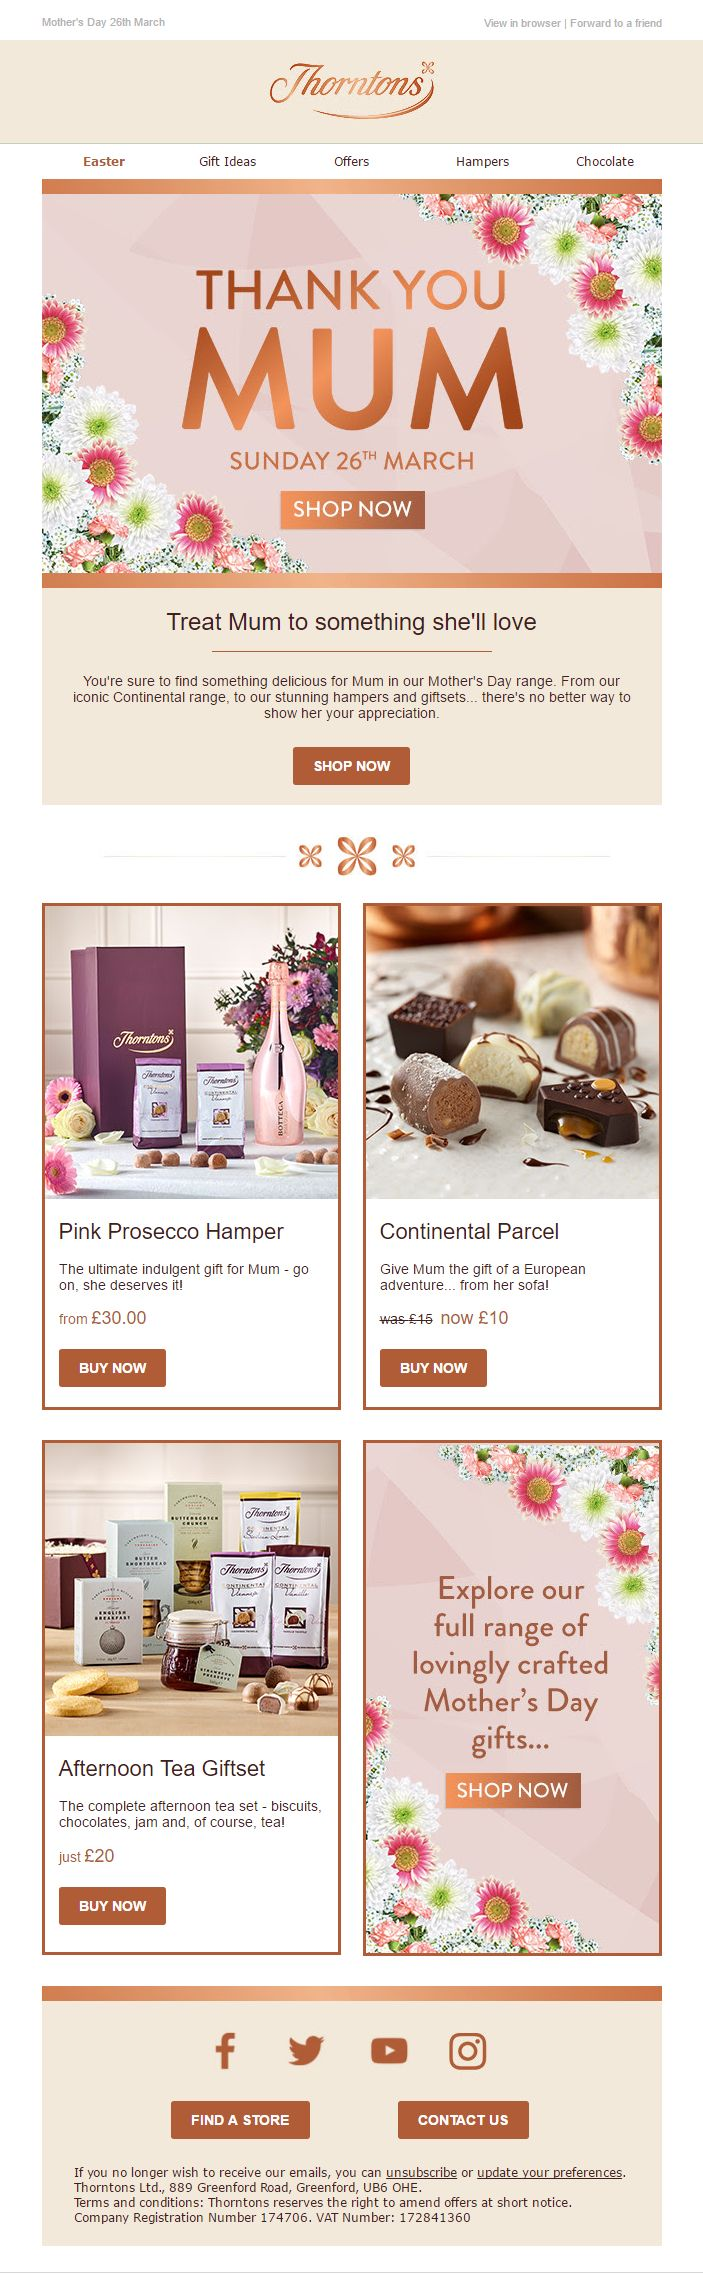 183 best mothers day images on pinterest advertising avon online mothers day email with product recommendations from thorntons emailmarketing email marketing gifts negle Gallery